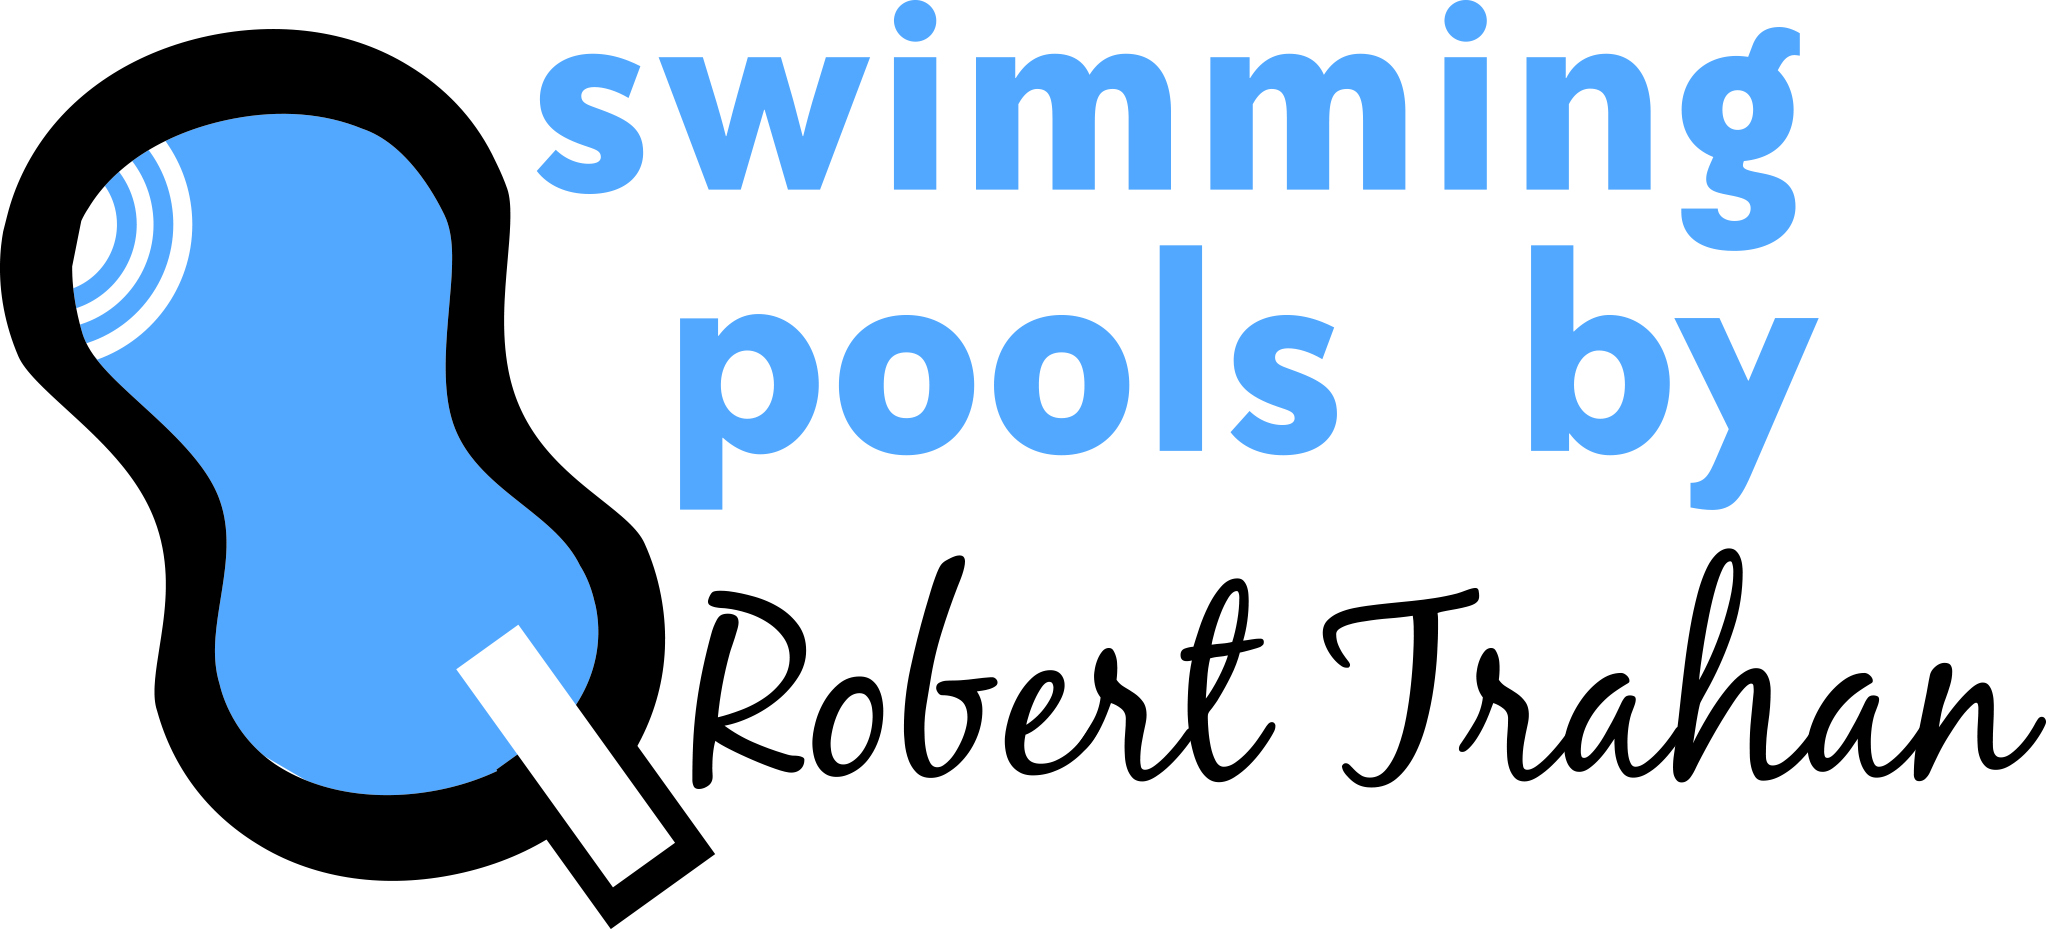 Swimming Pools by Robert Trahan